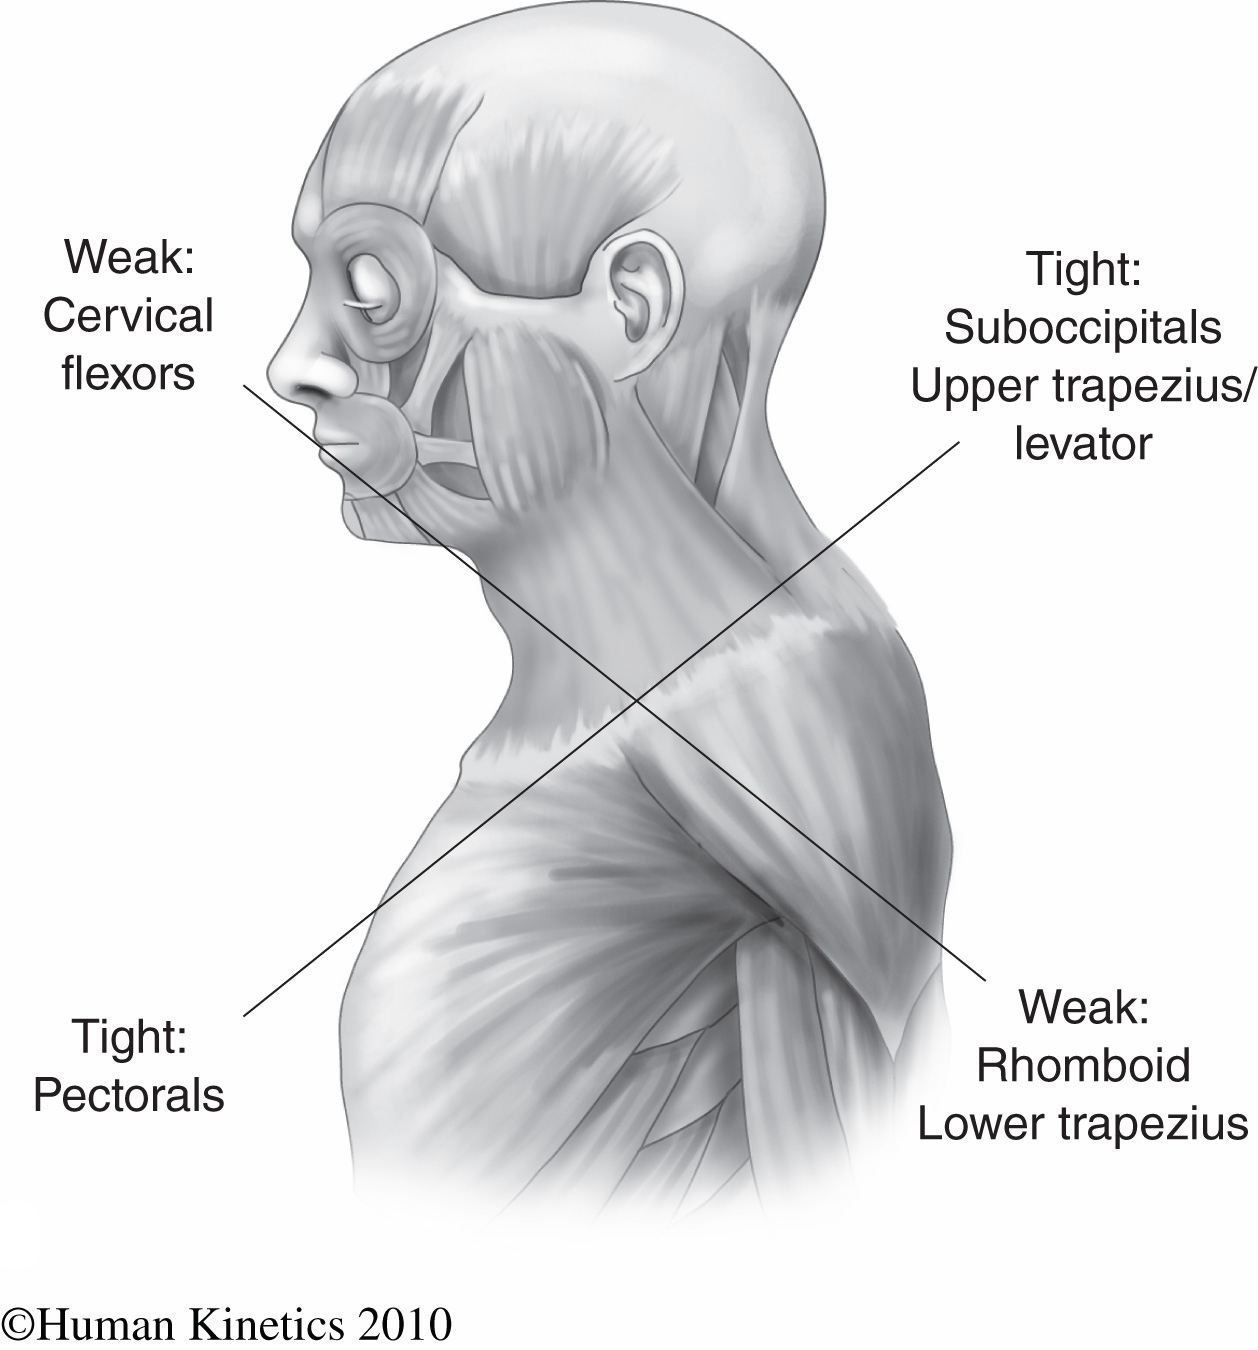 hight resolution of in short it is the chronic over activation of the pec musculature on the anterior front side and the suboccipital trap and levator scapulae musculature